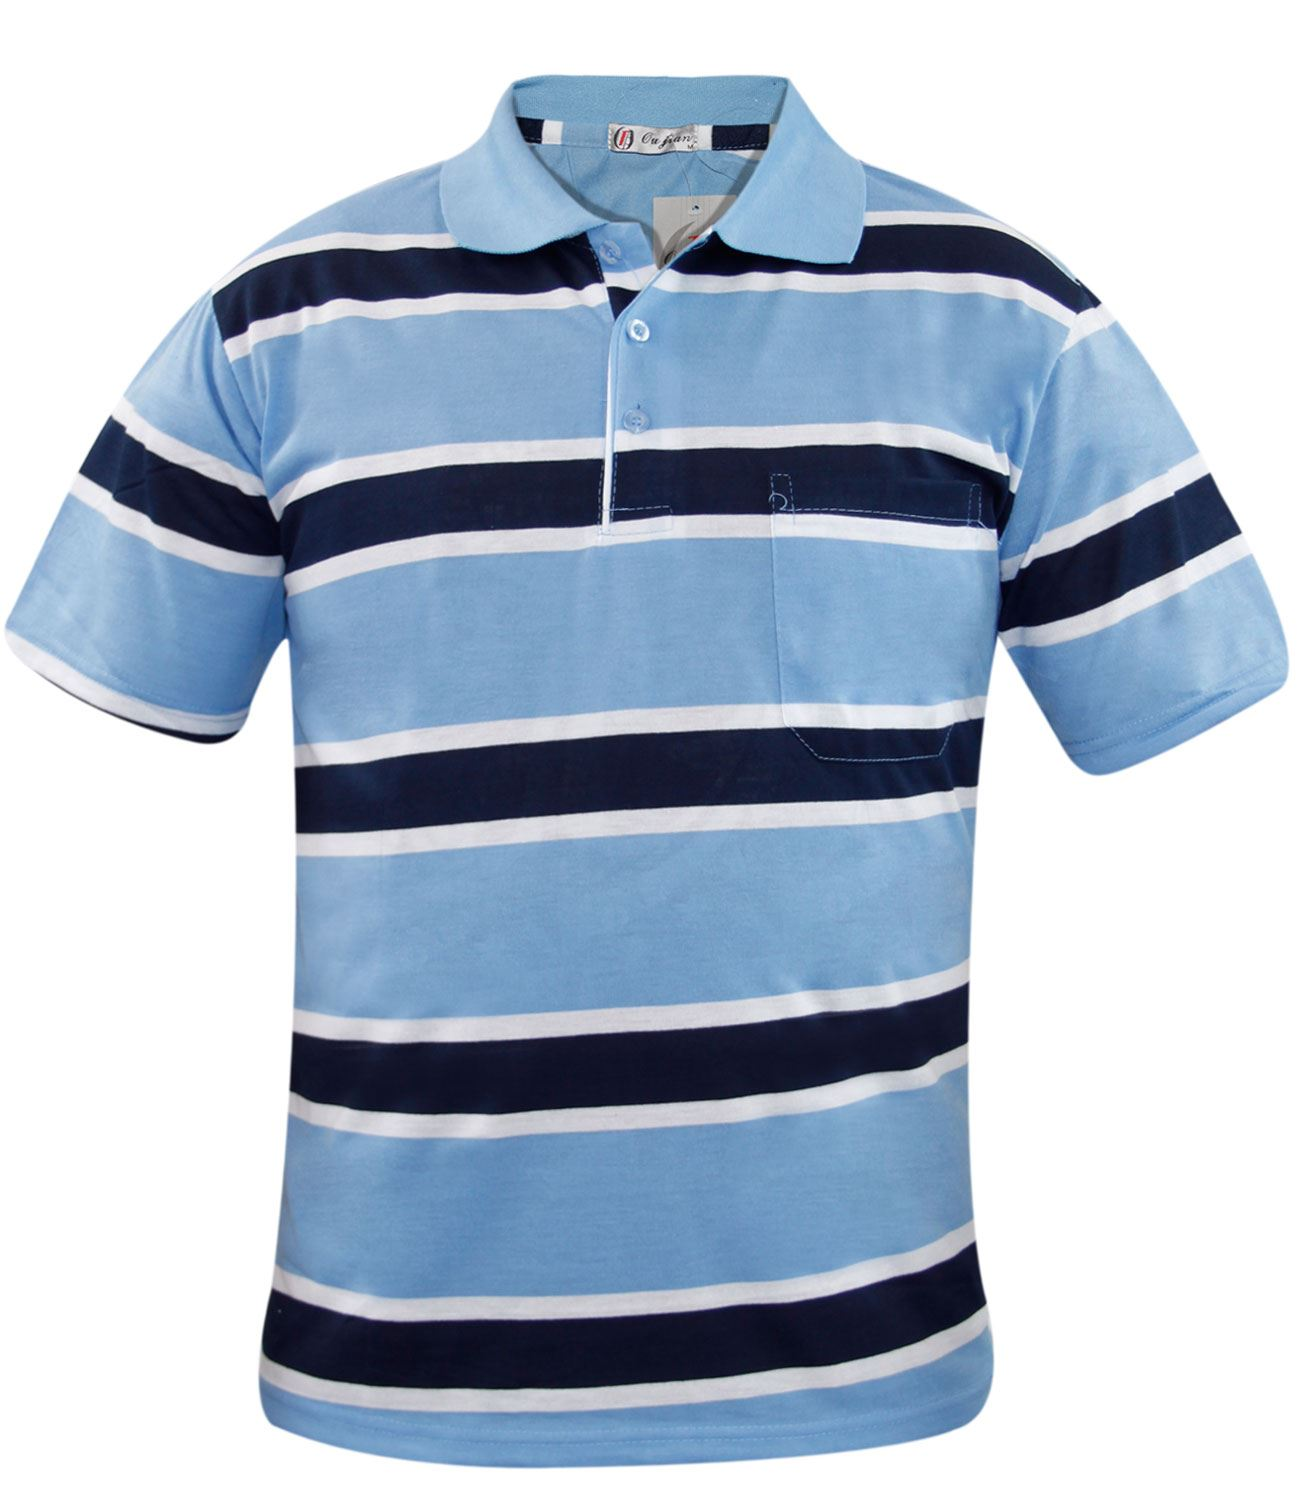 New mens yarn dyed stripe polo short sleeve pocket t shirt for Polo t shirts with pocket online